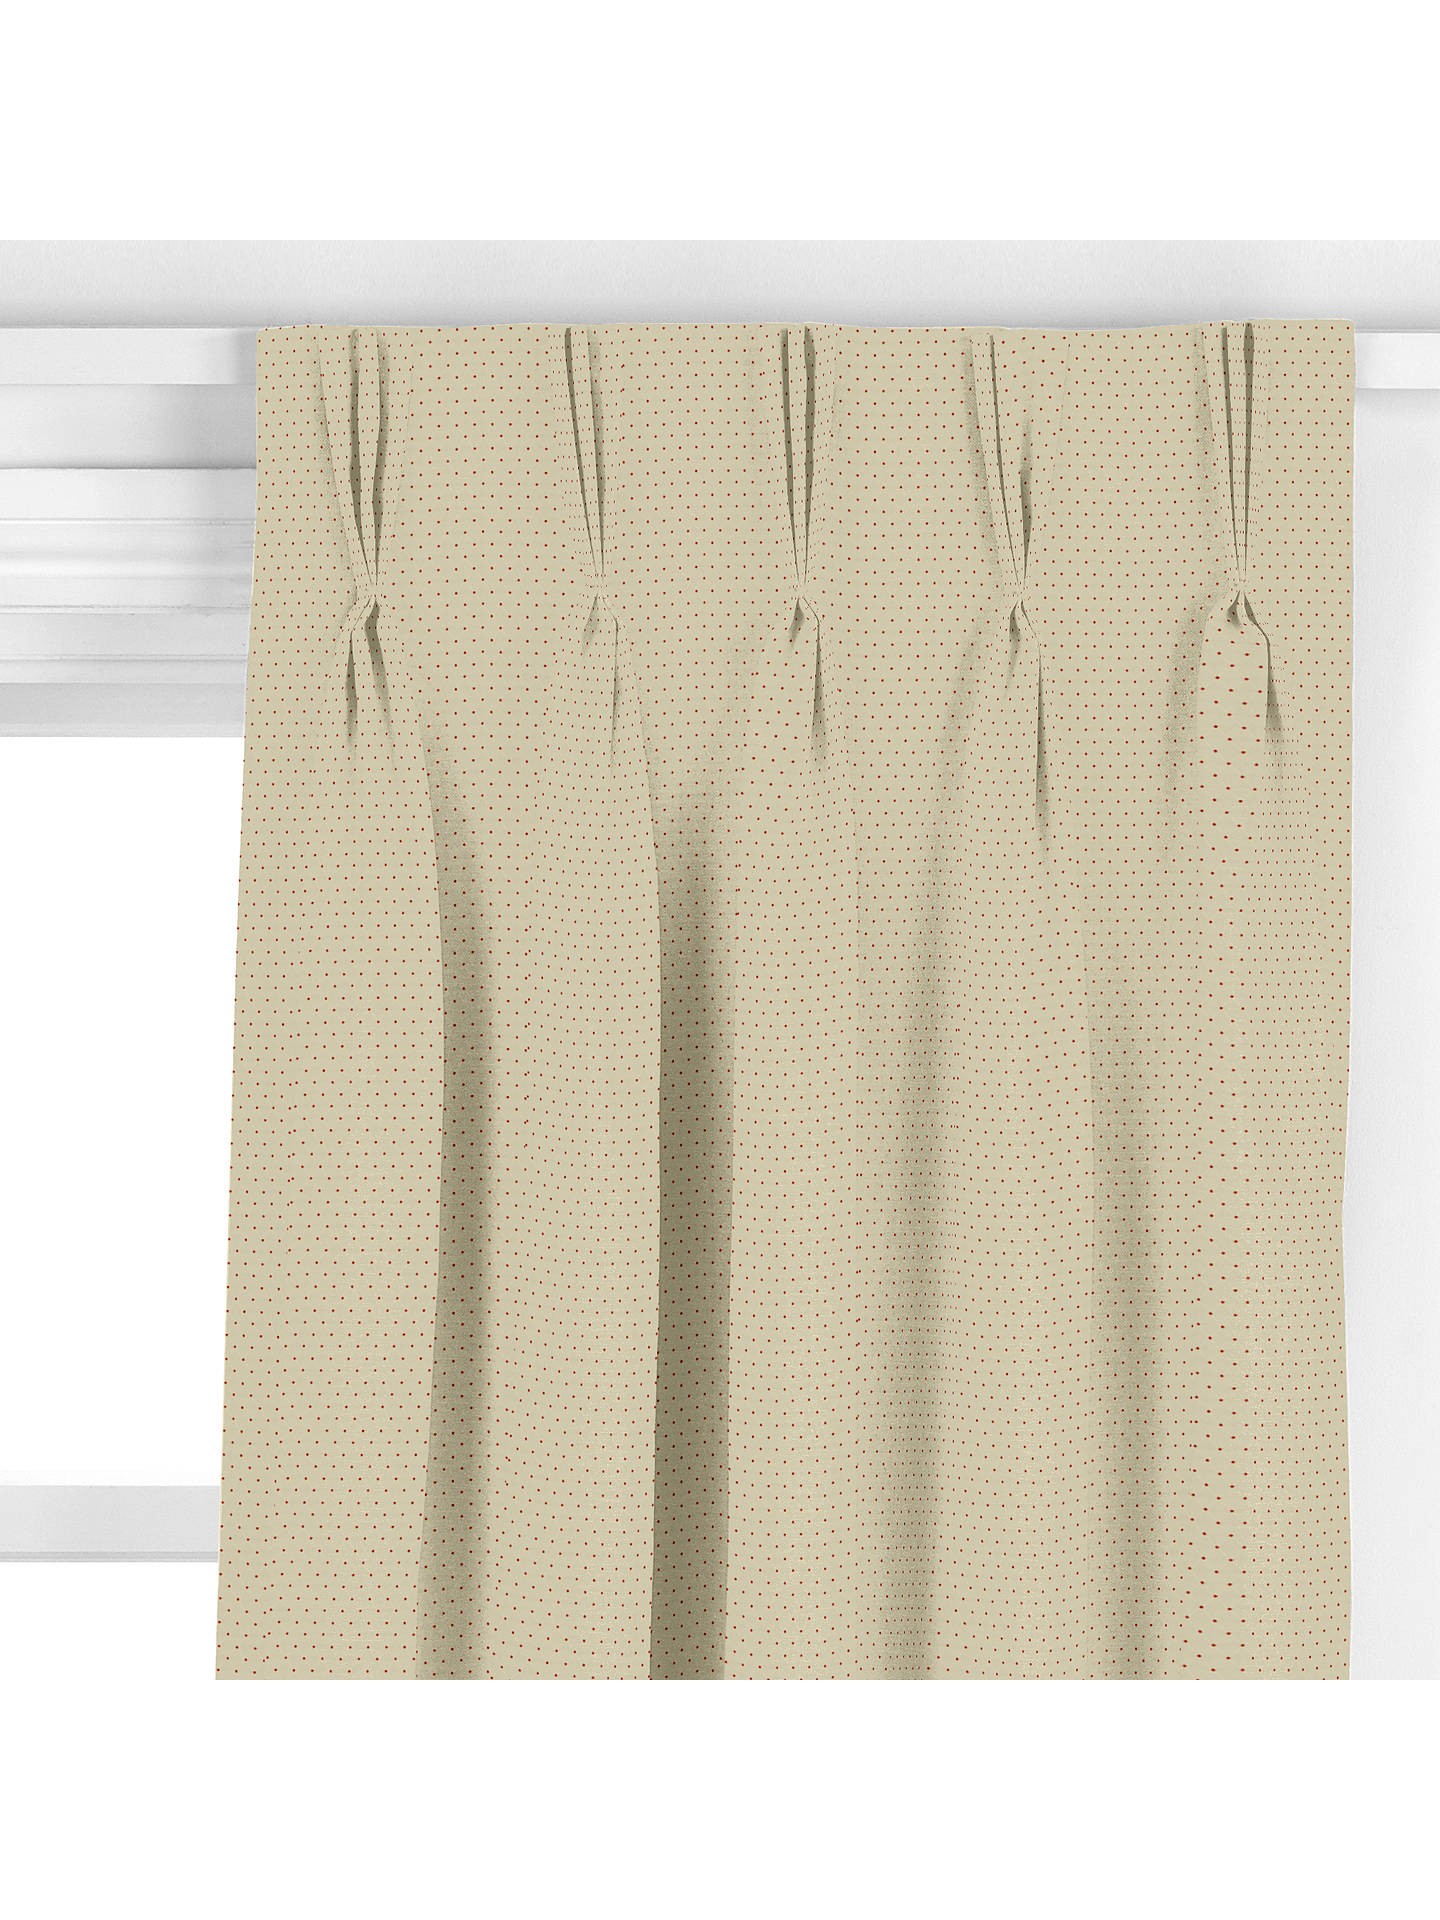 BuyJohn Lewis & Partners Finsbury Trellis Curtain, Gold Online at johnlewis.com